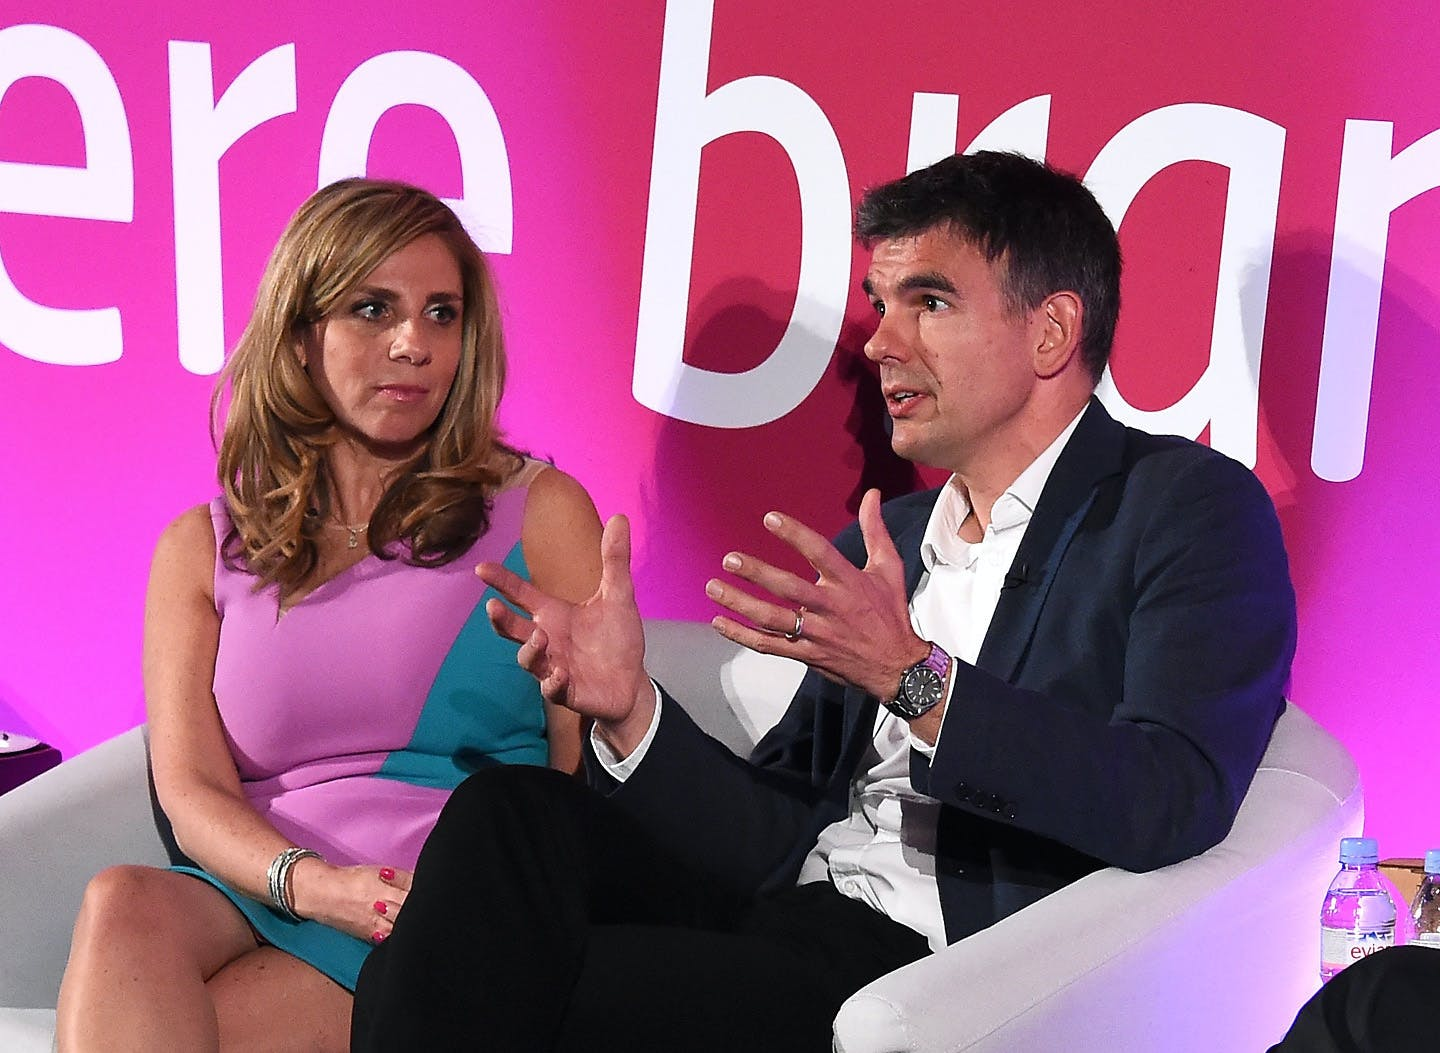 Nicola Mendelsohn CBE, vice-president EMEA Facebook and Matt Brittin, president, Google EMEA at Advertising Week Europe